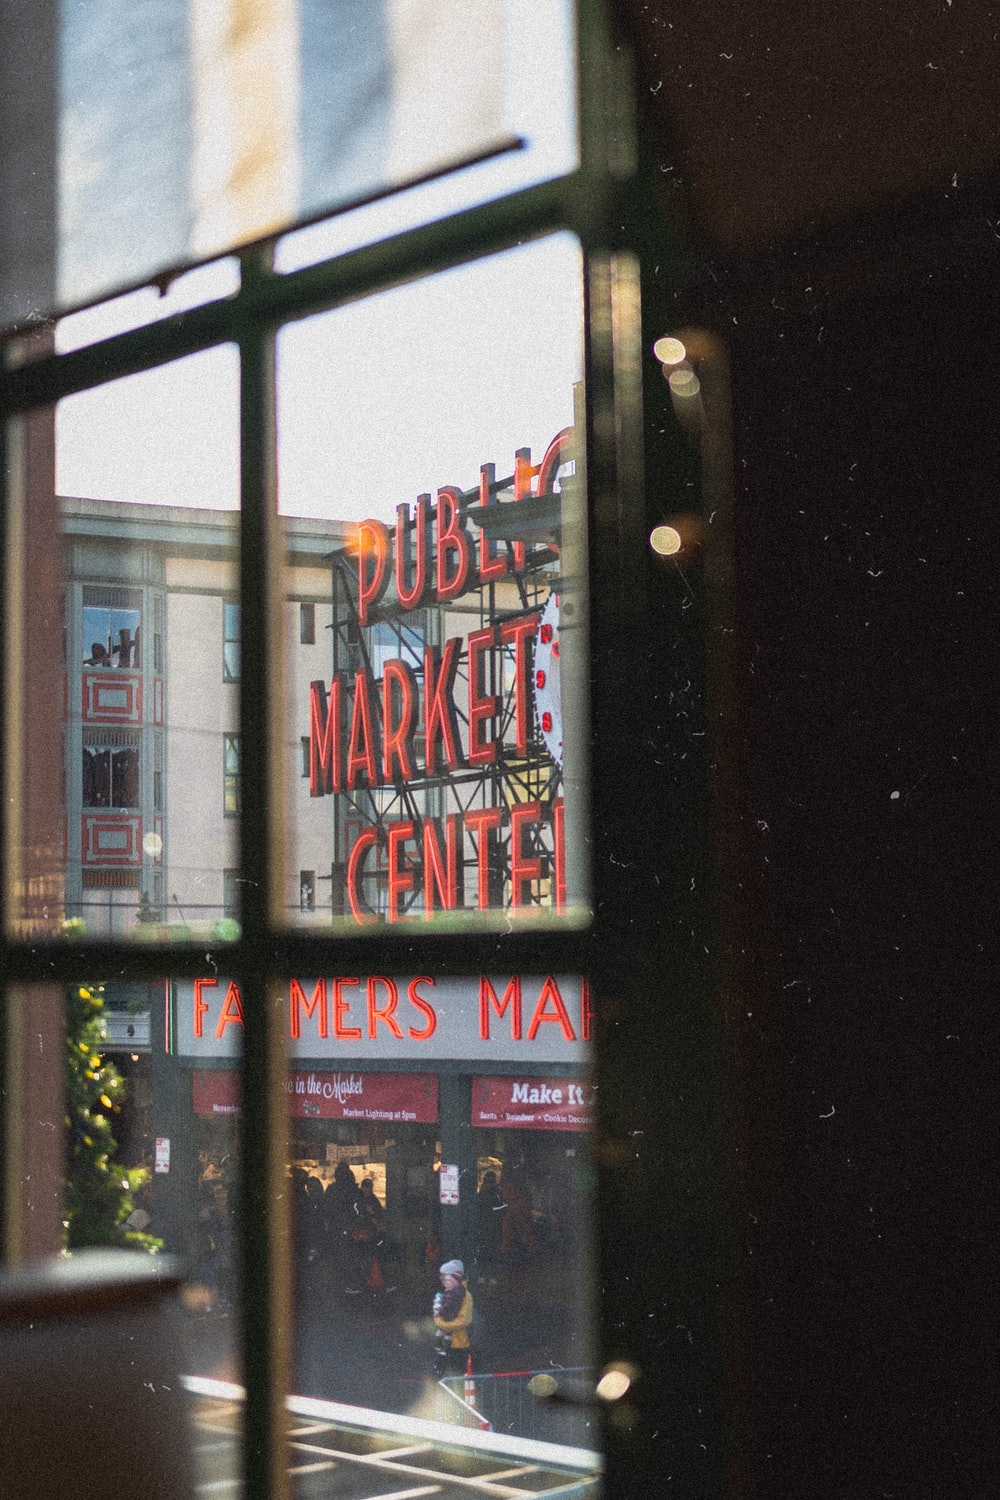 red public market center signage